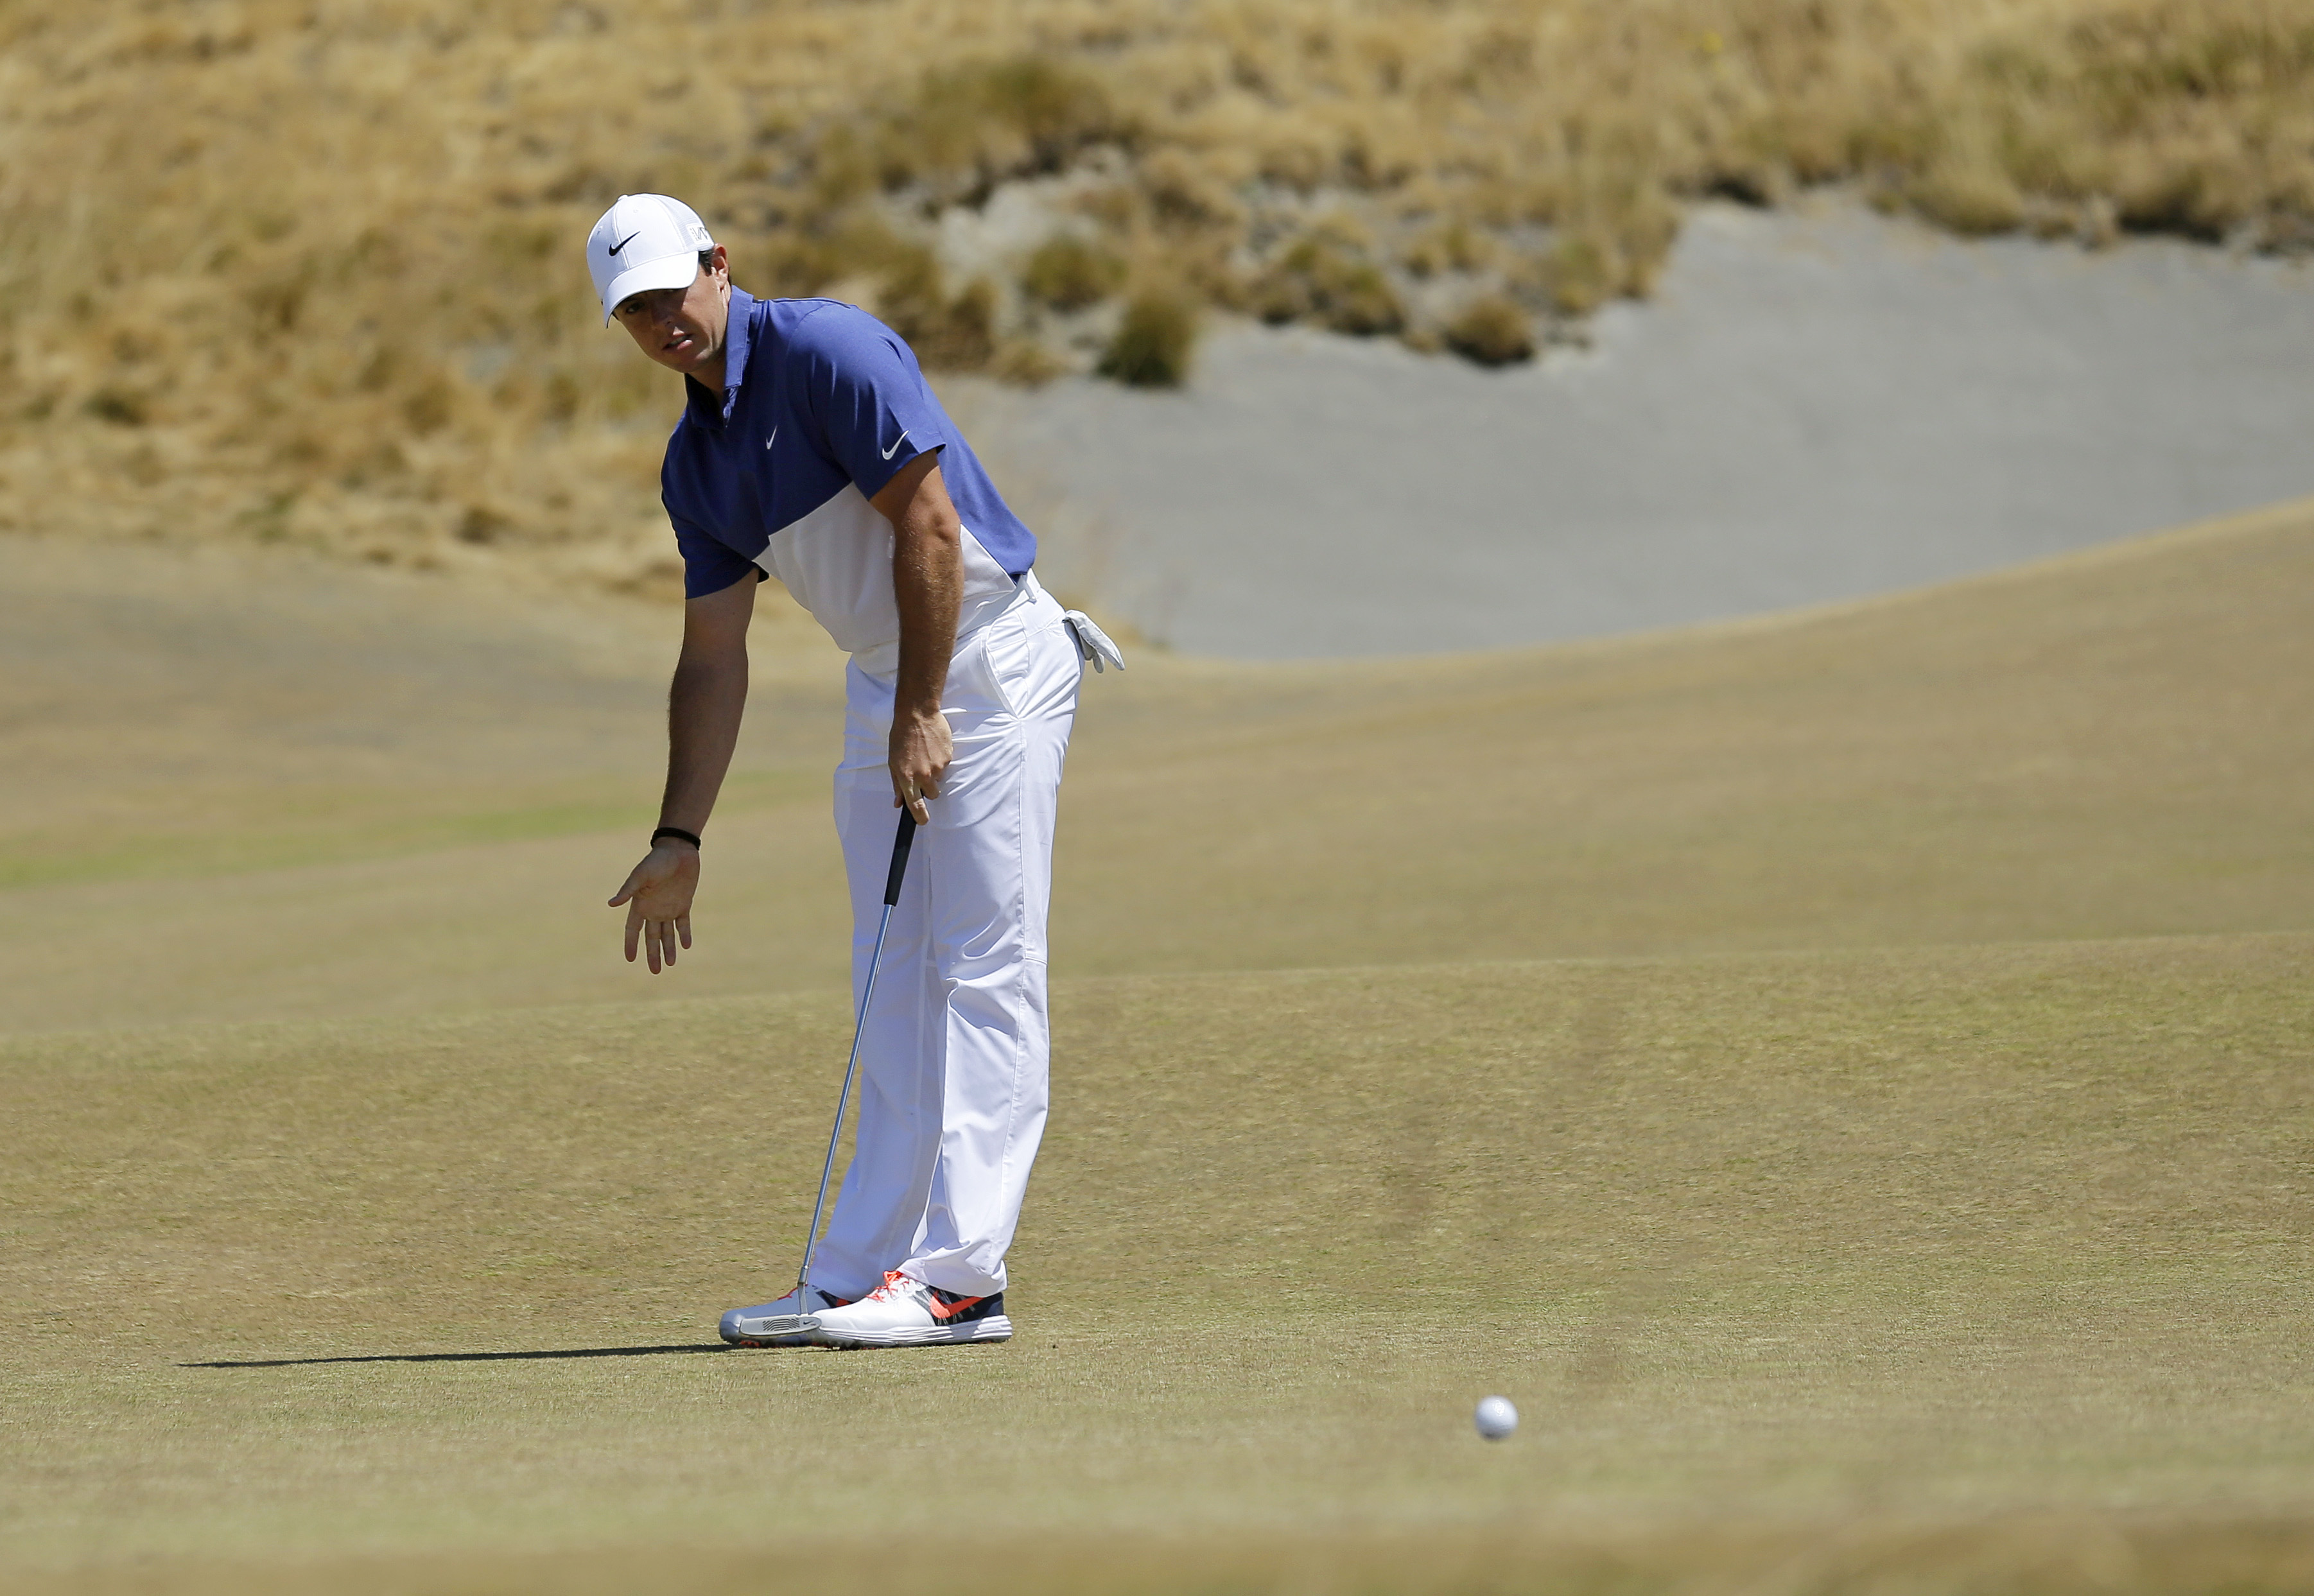 Rory McIlroy, of Northern Ireland, reacts to his putt on the fourth hole during the final round of the U.S. Open golf tournament at Chambers Bay on Sunday, June 21, 2015 in University Place, Wash. (AP Photo/Ted S. Warren)